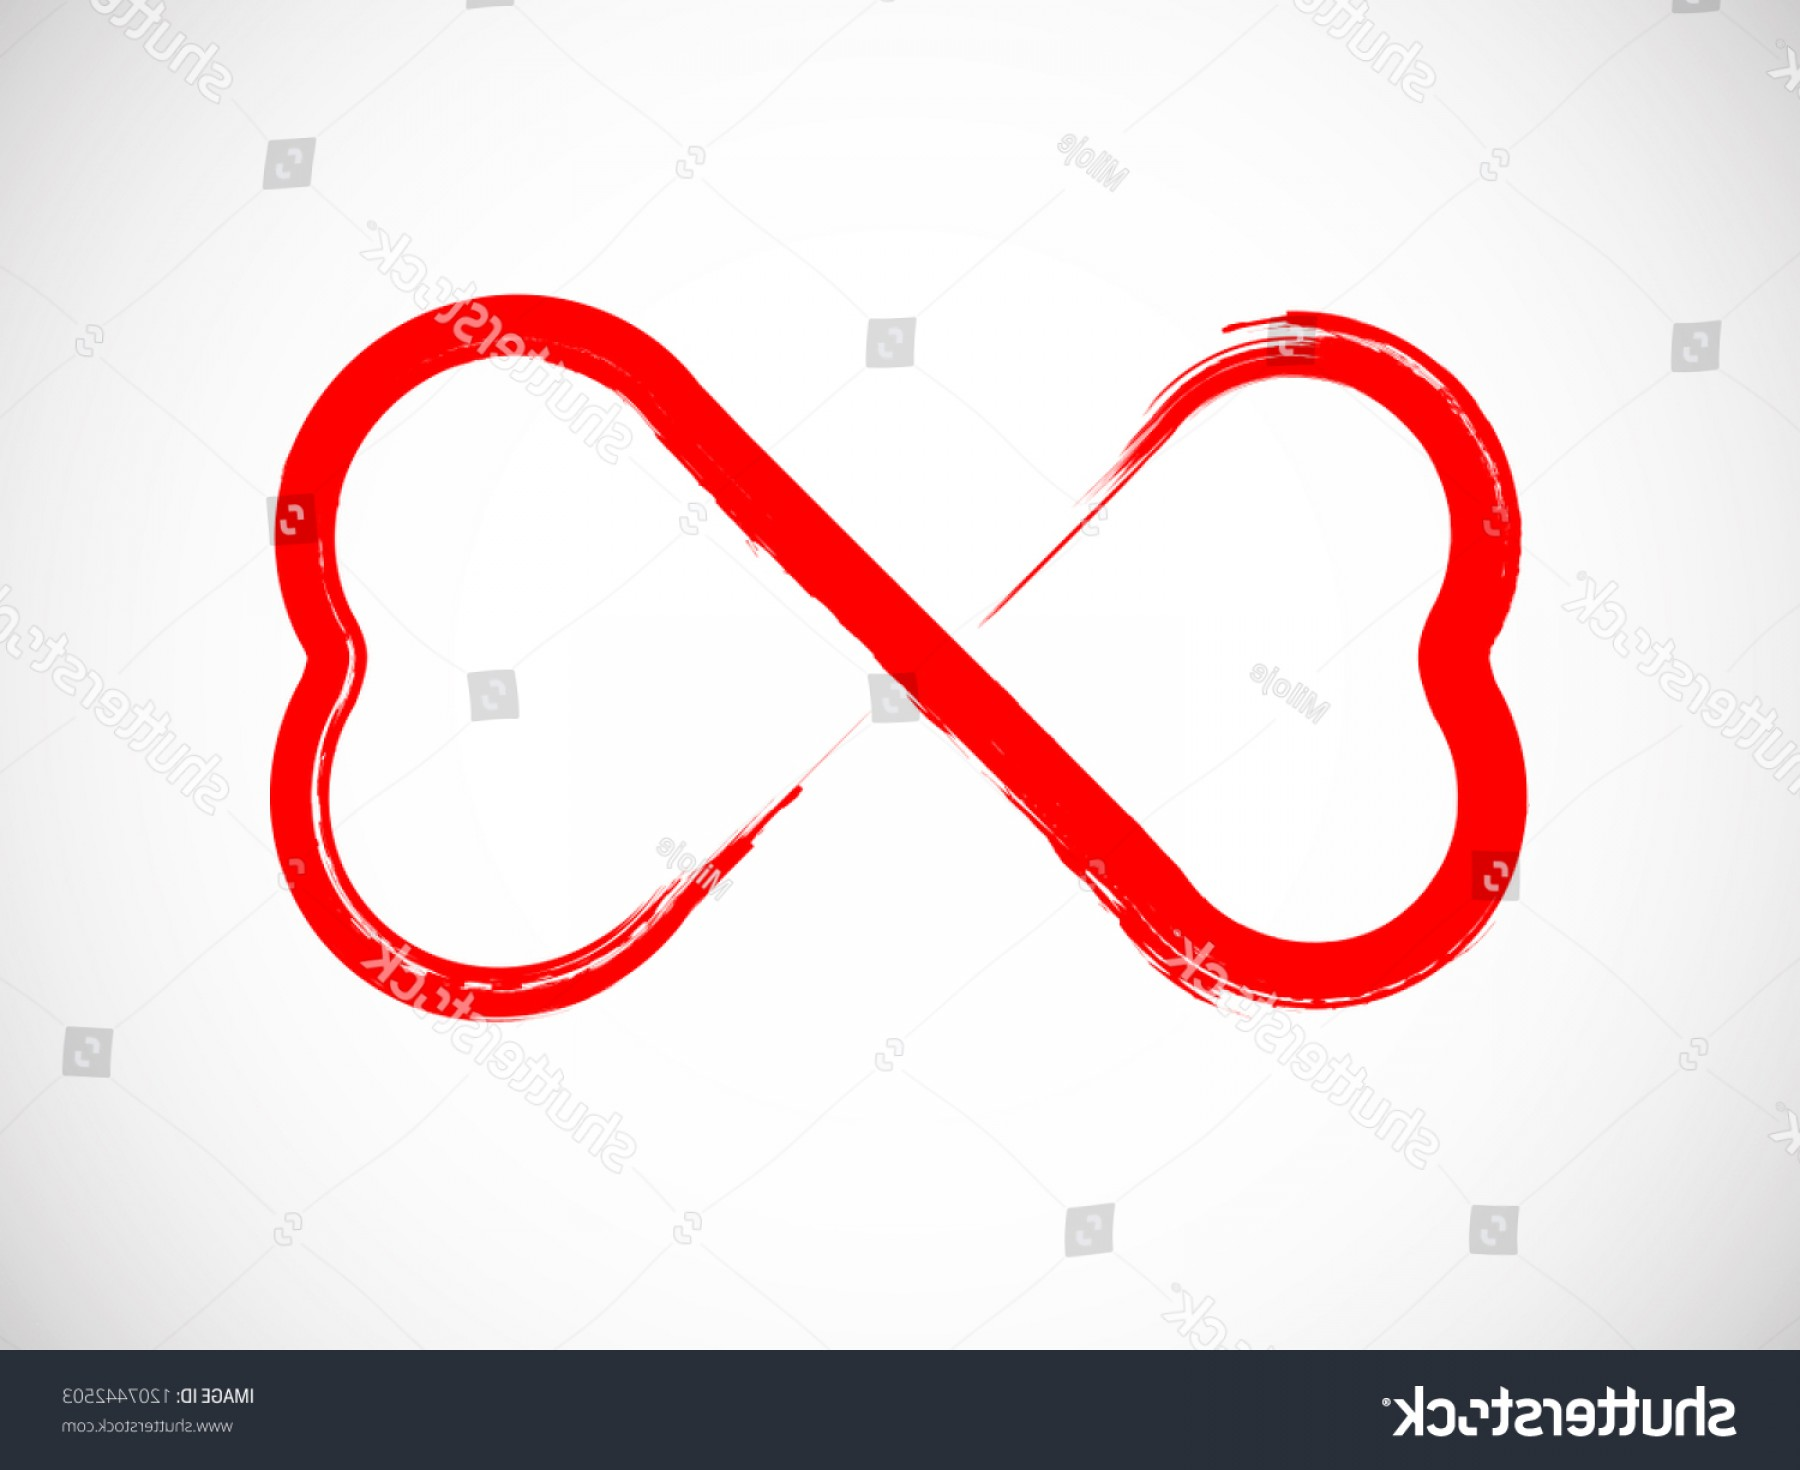 Infinity Grunge Heart Vector: Two Heart Love Grunge Infinity Symbol